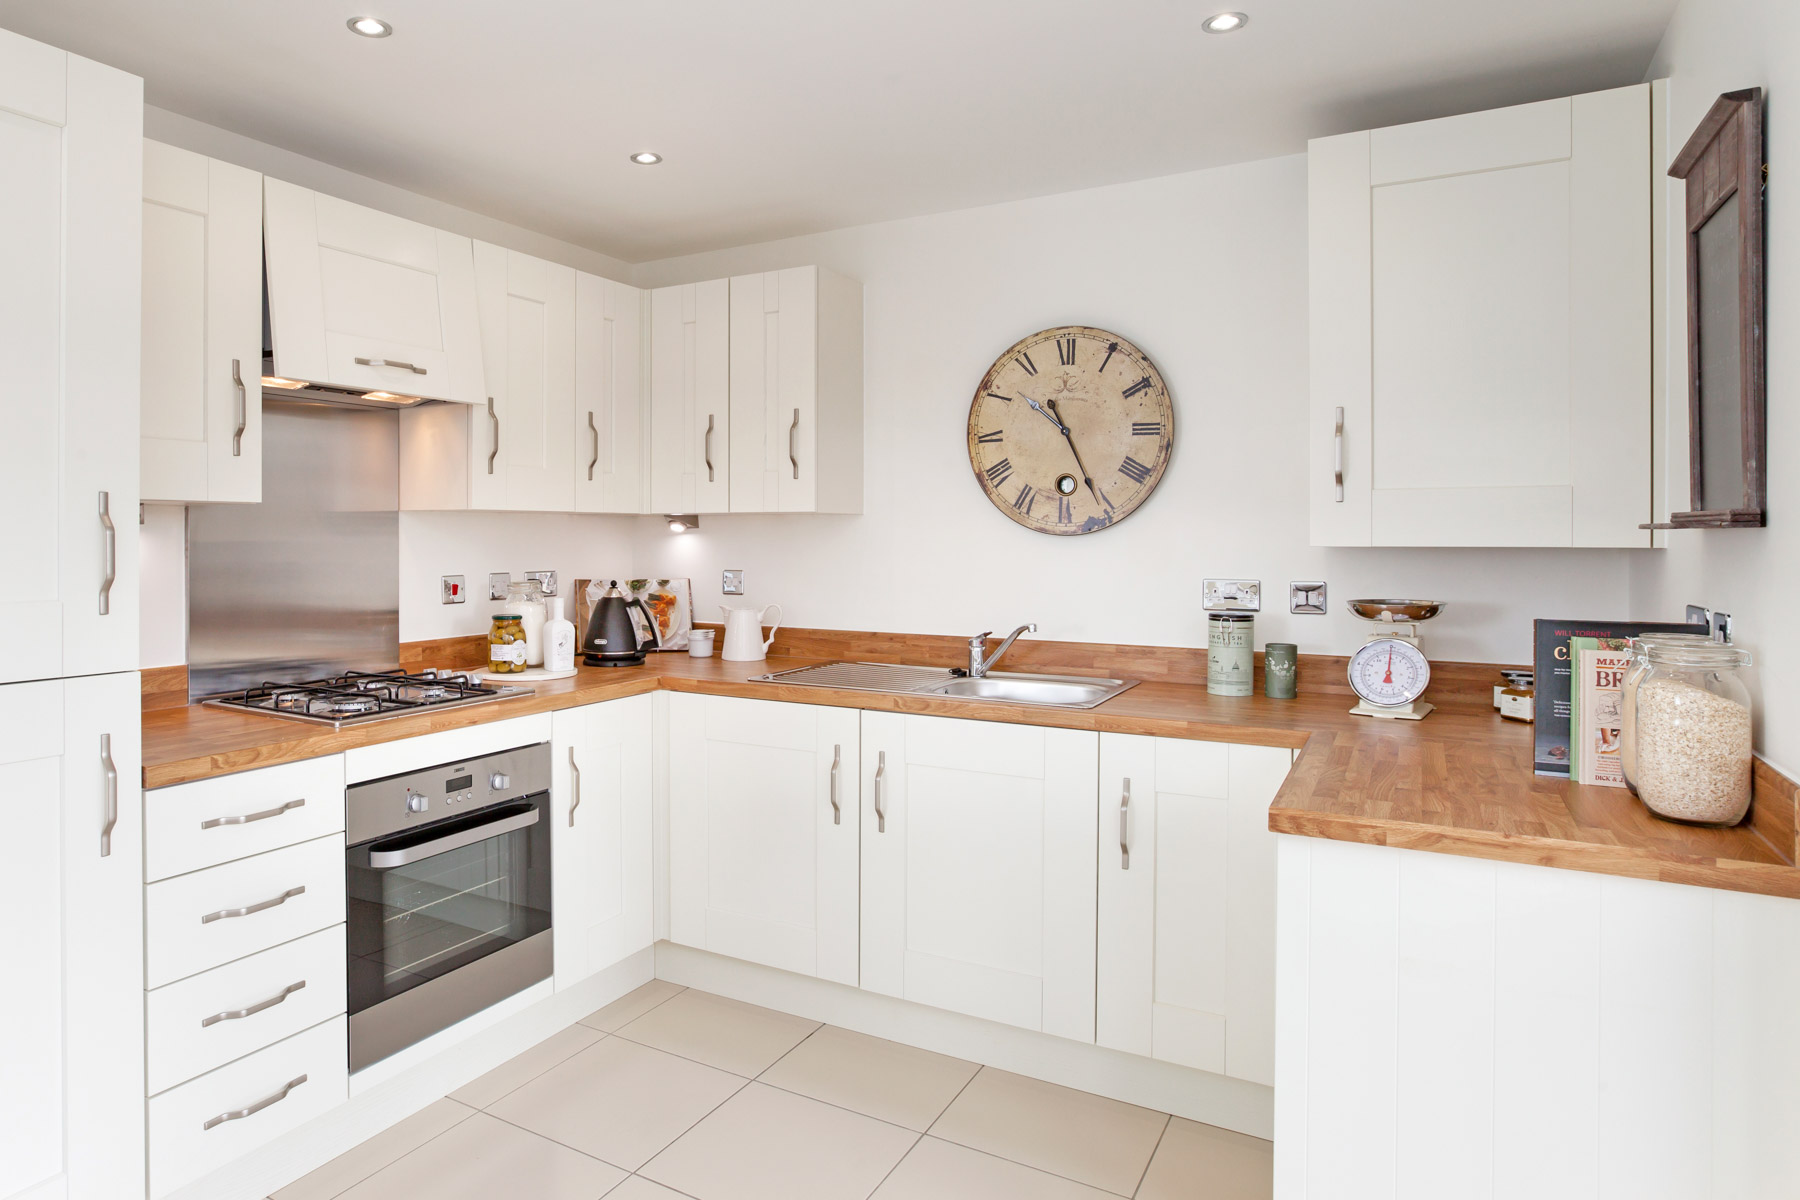 TW Exeter - Mountbatten Mews - Gosford example kitchen